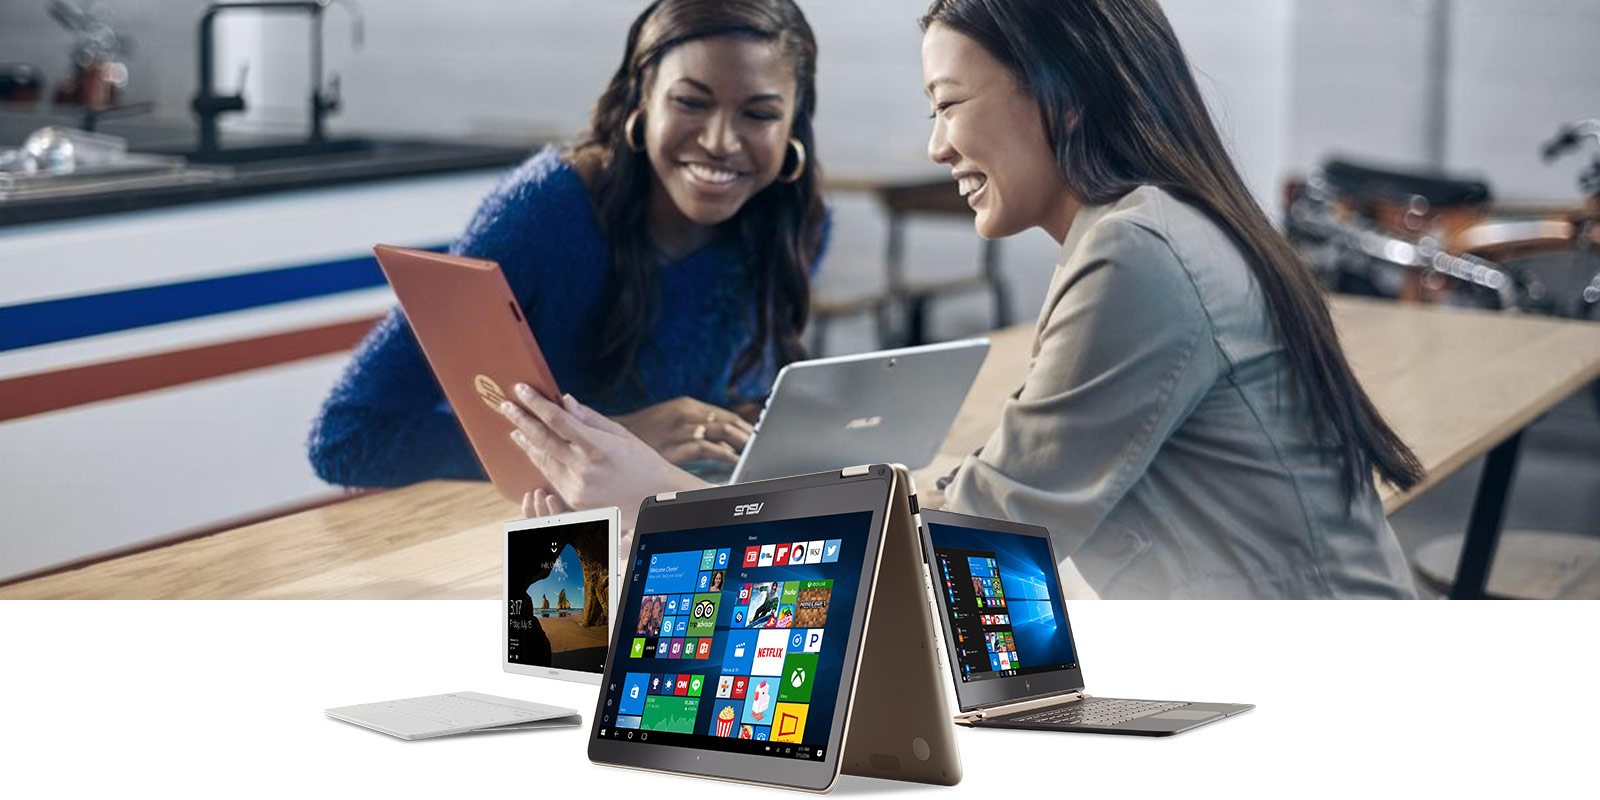 Several types of Windows 10 devices in dynamic formation with an image of two women sitting at a table looking at a tablet screen behind them